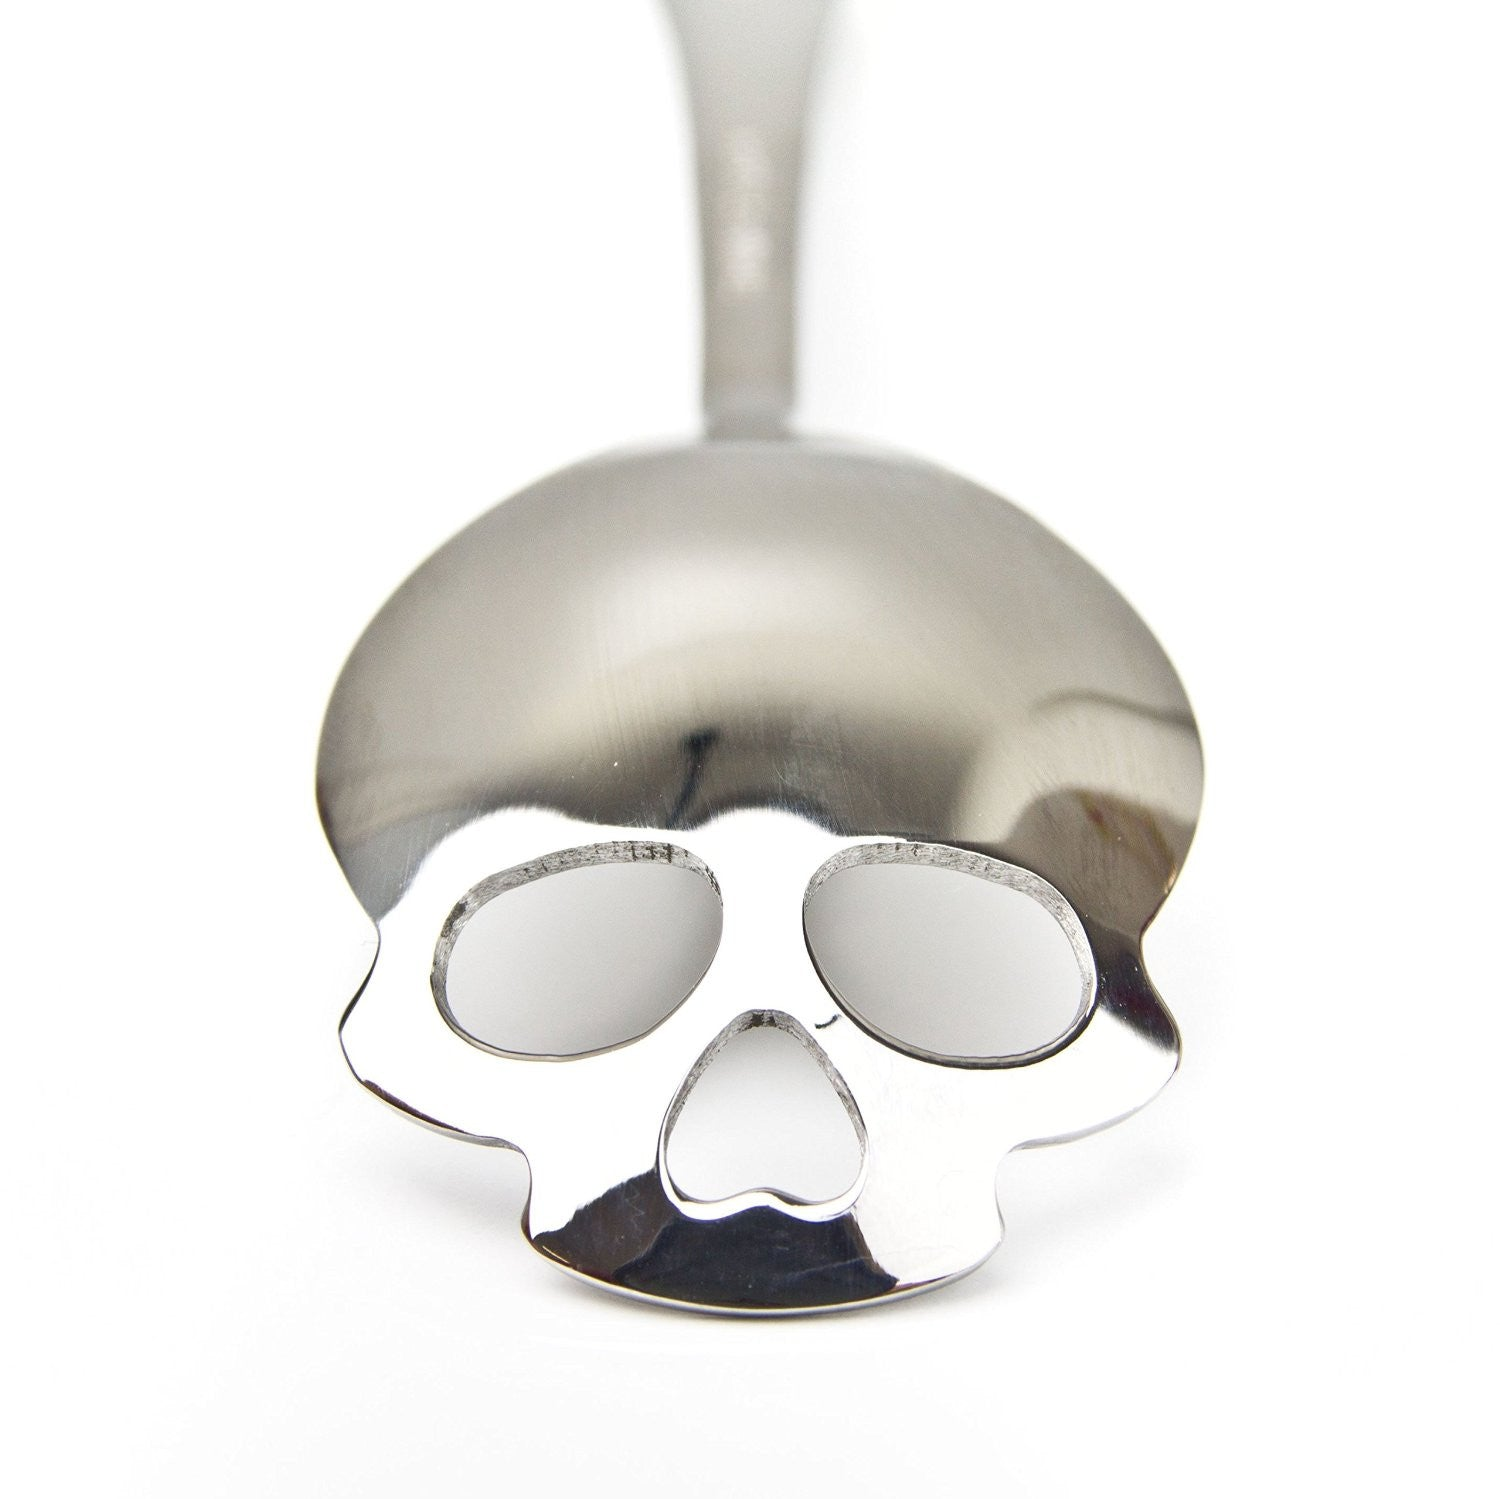 Silver Skull teaspoon in stainless steel.